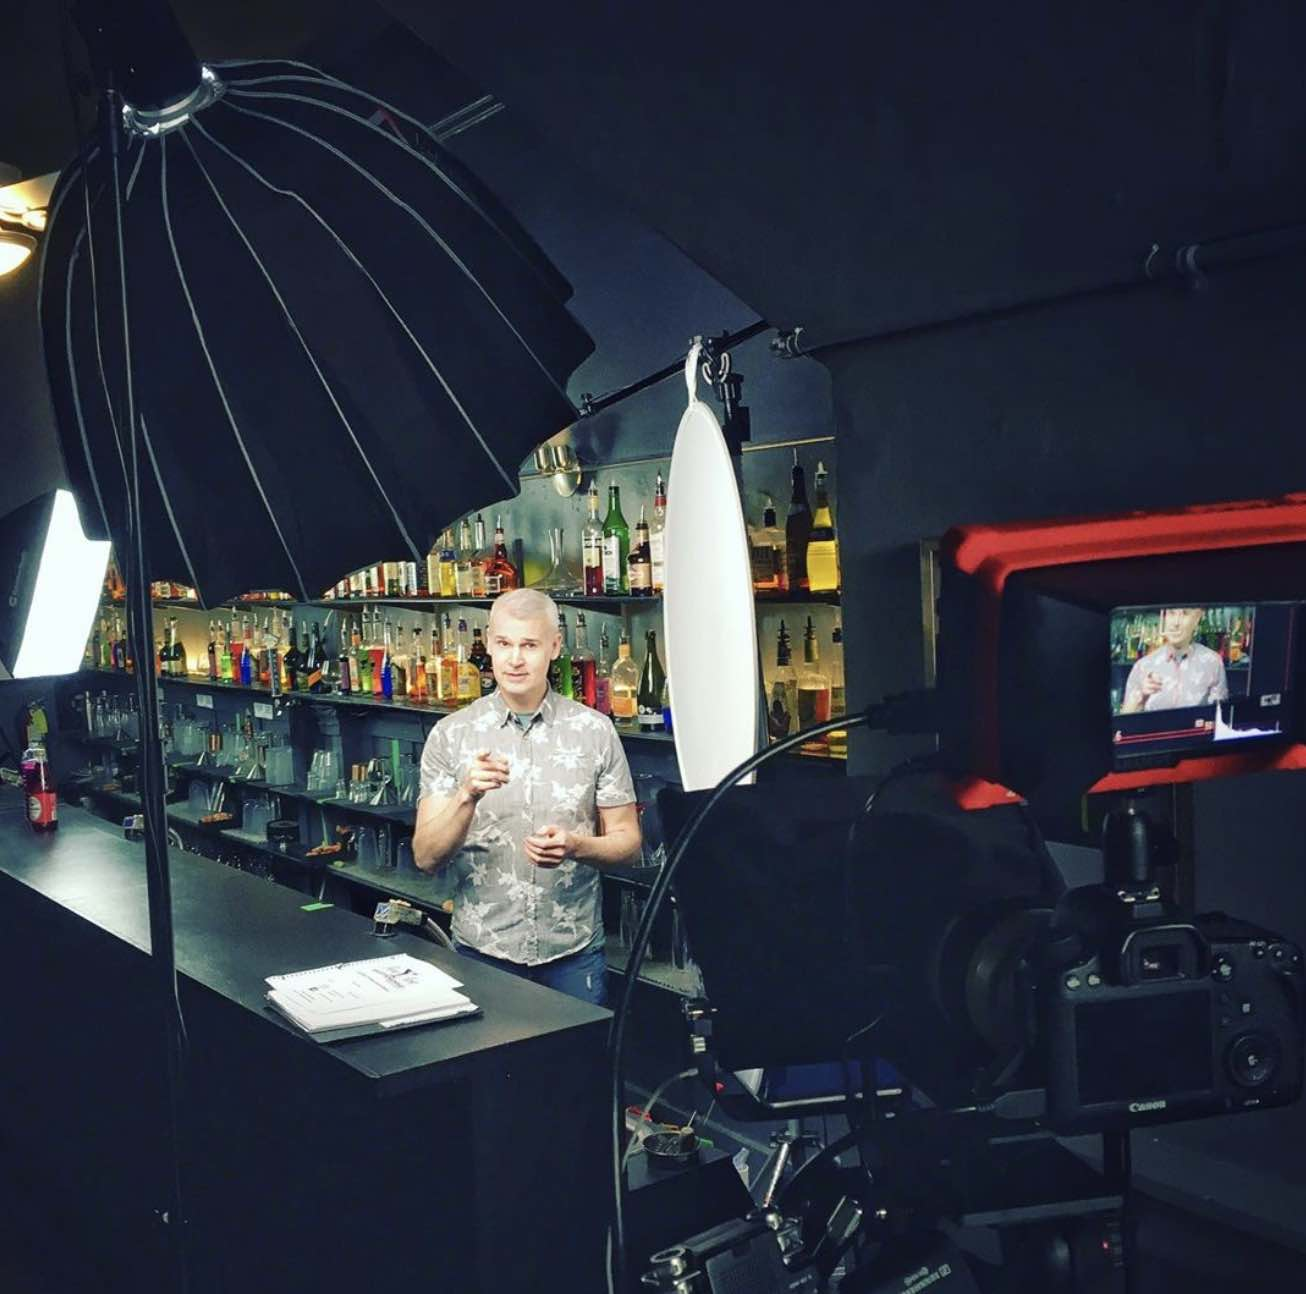 bartending instructors with camera